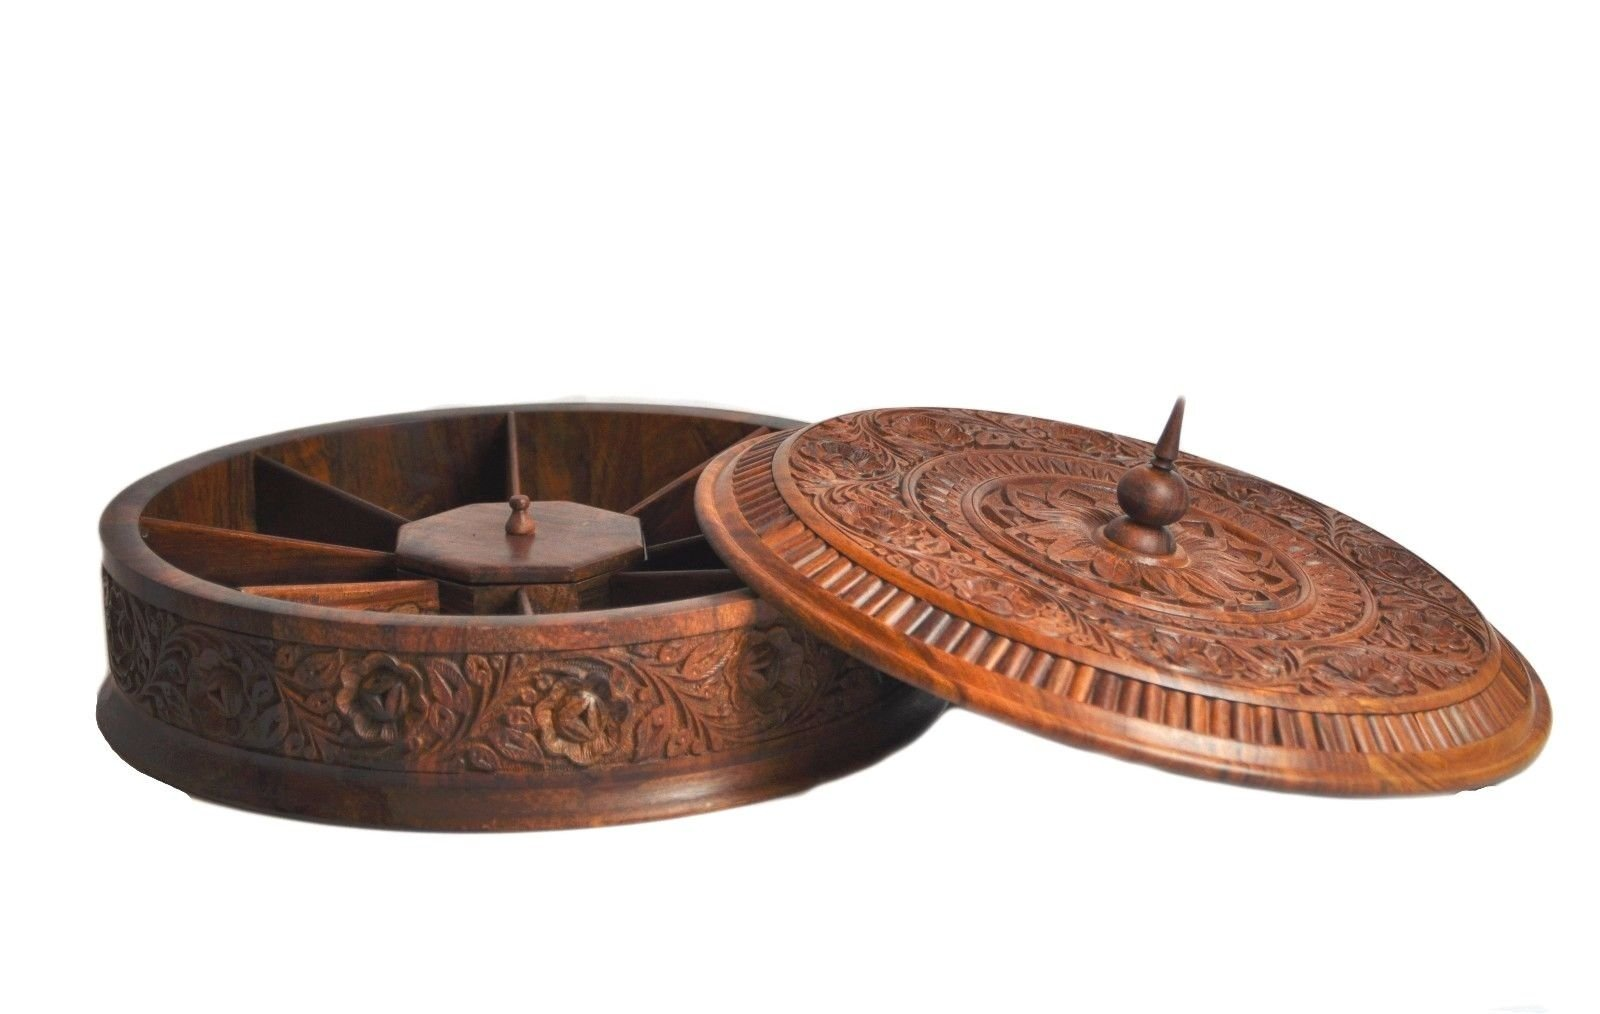 Wooden carved Dry fruits and nuts Big Bowl with Lids - Kitchen decor- Kitchen organization- Rosewood carved work